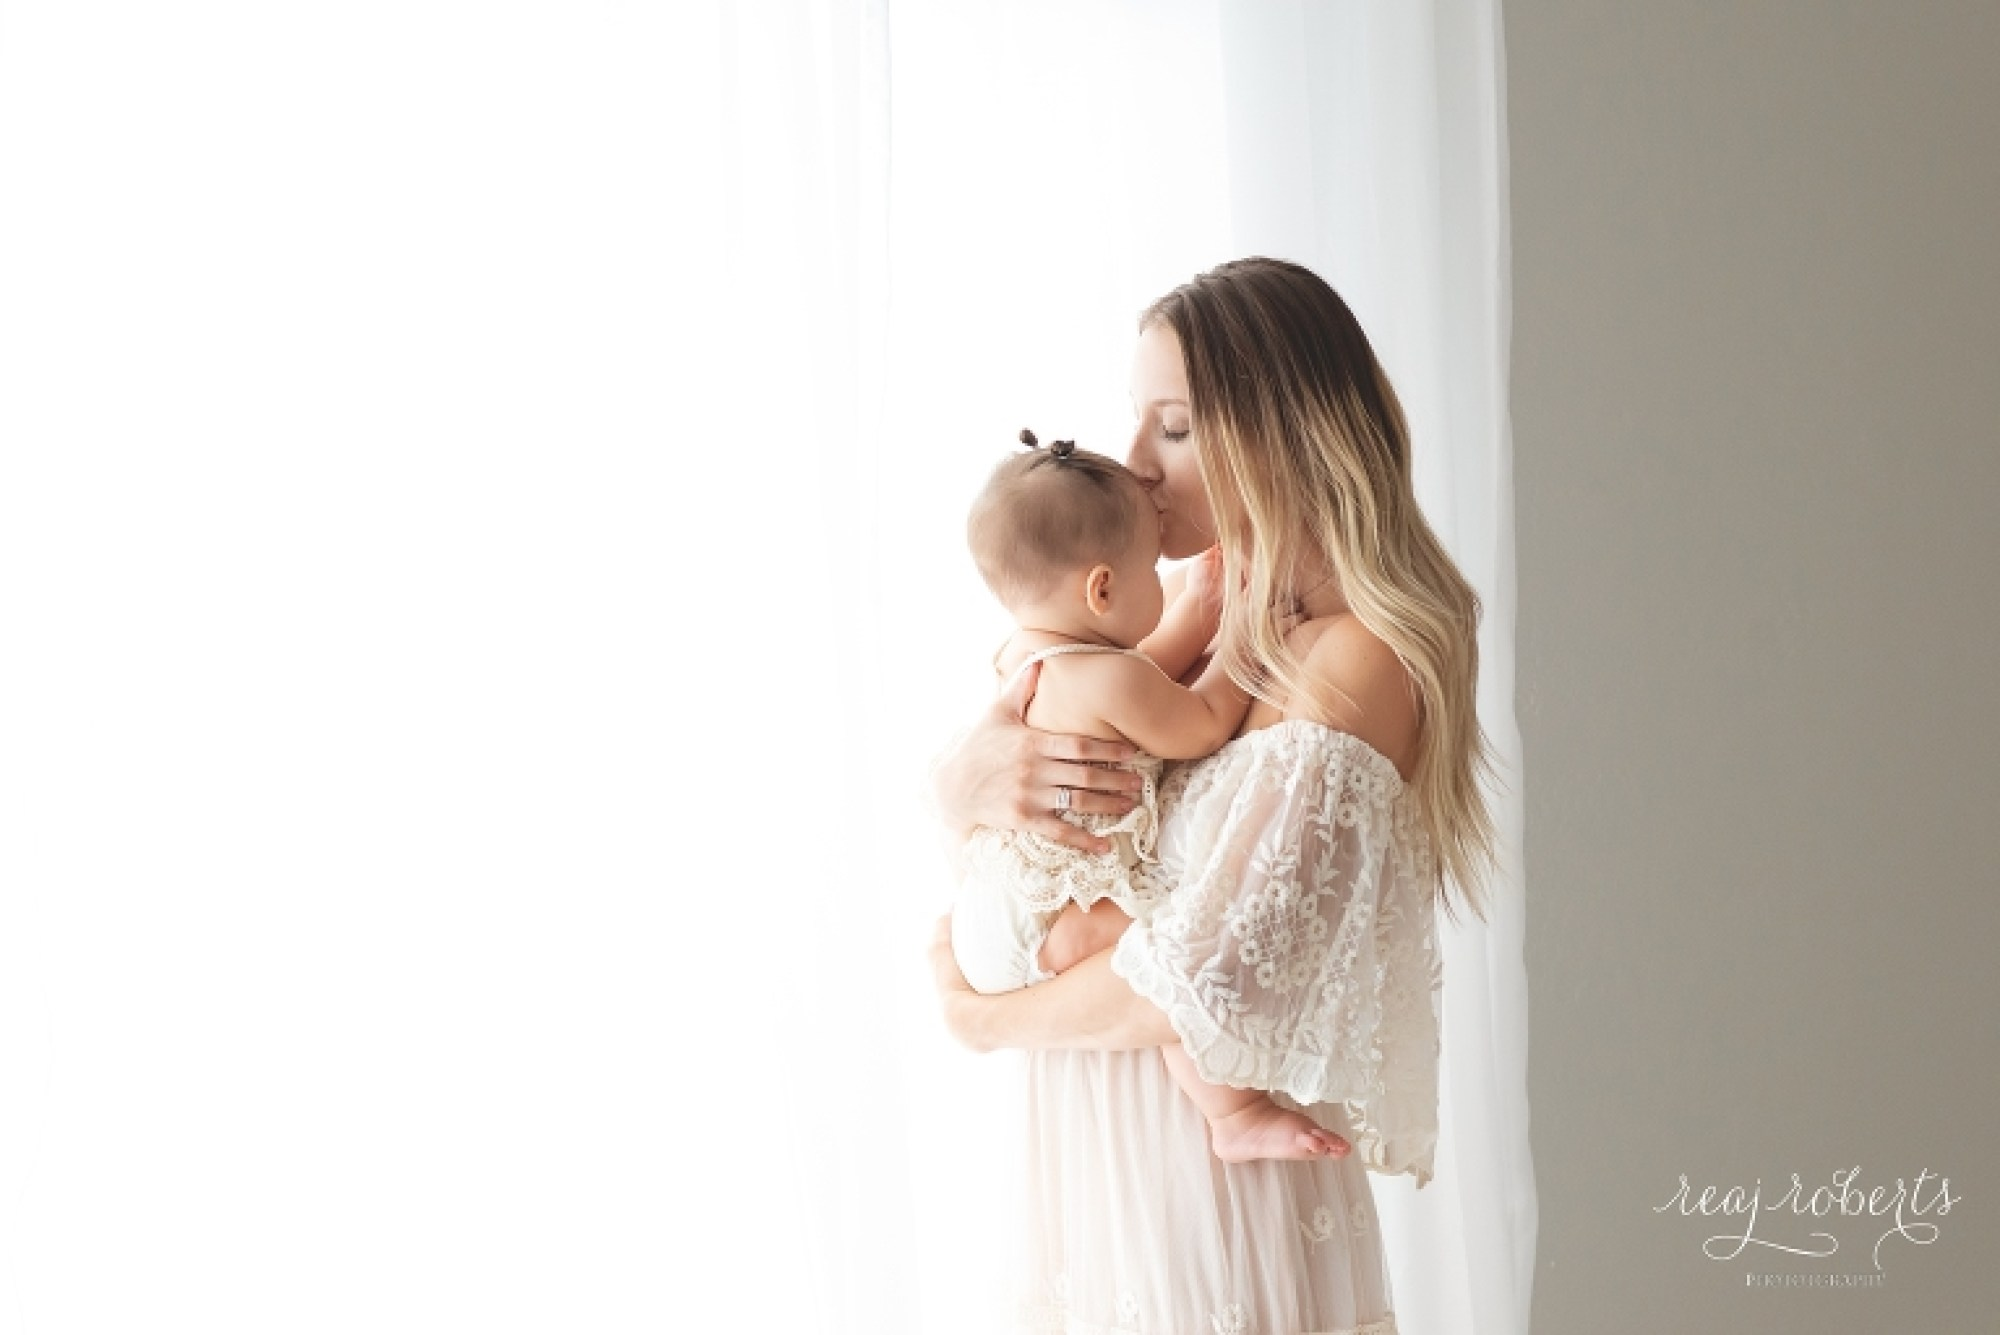 Chandler Family Photographer | Motherhood photos with baby | Reaj Roberts Photography